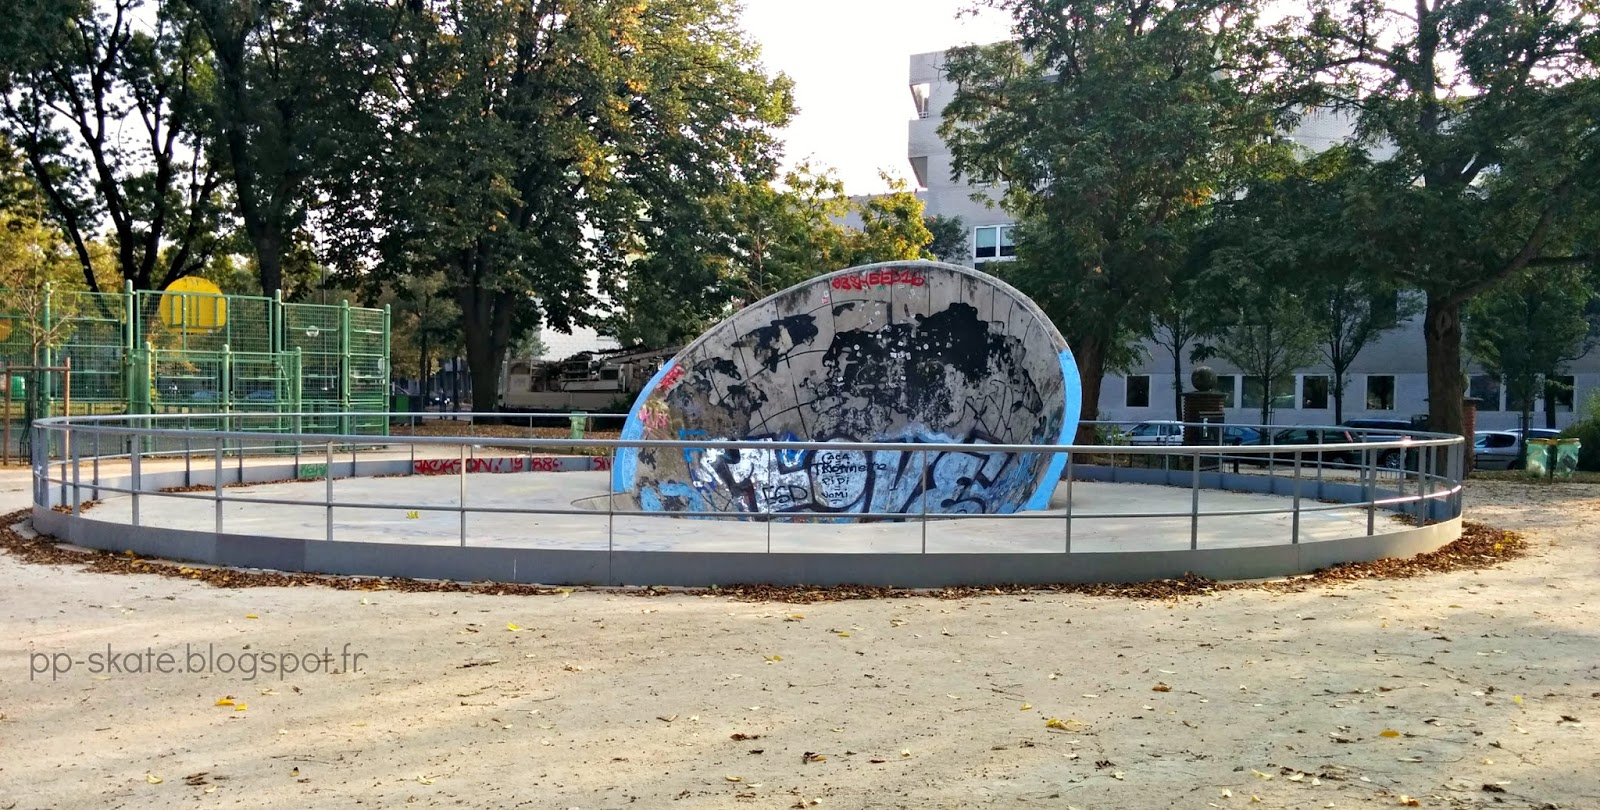 Skatepark paris craddle